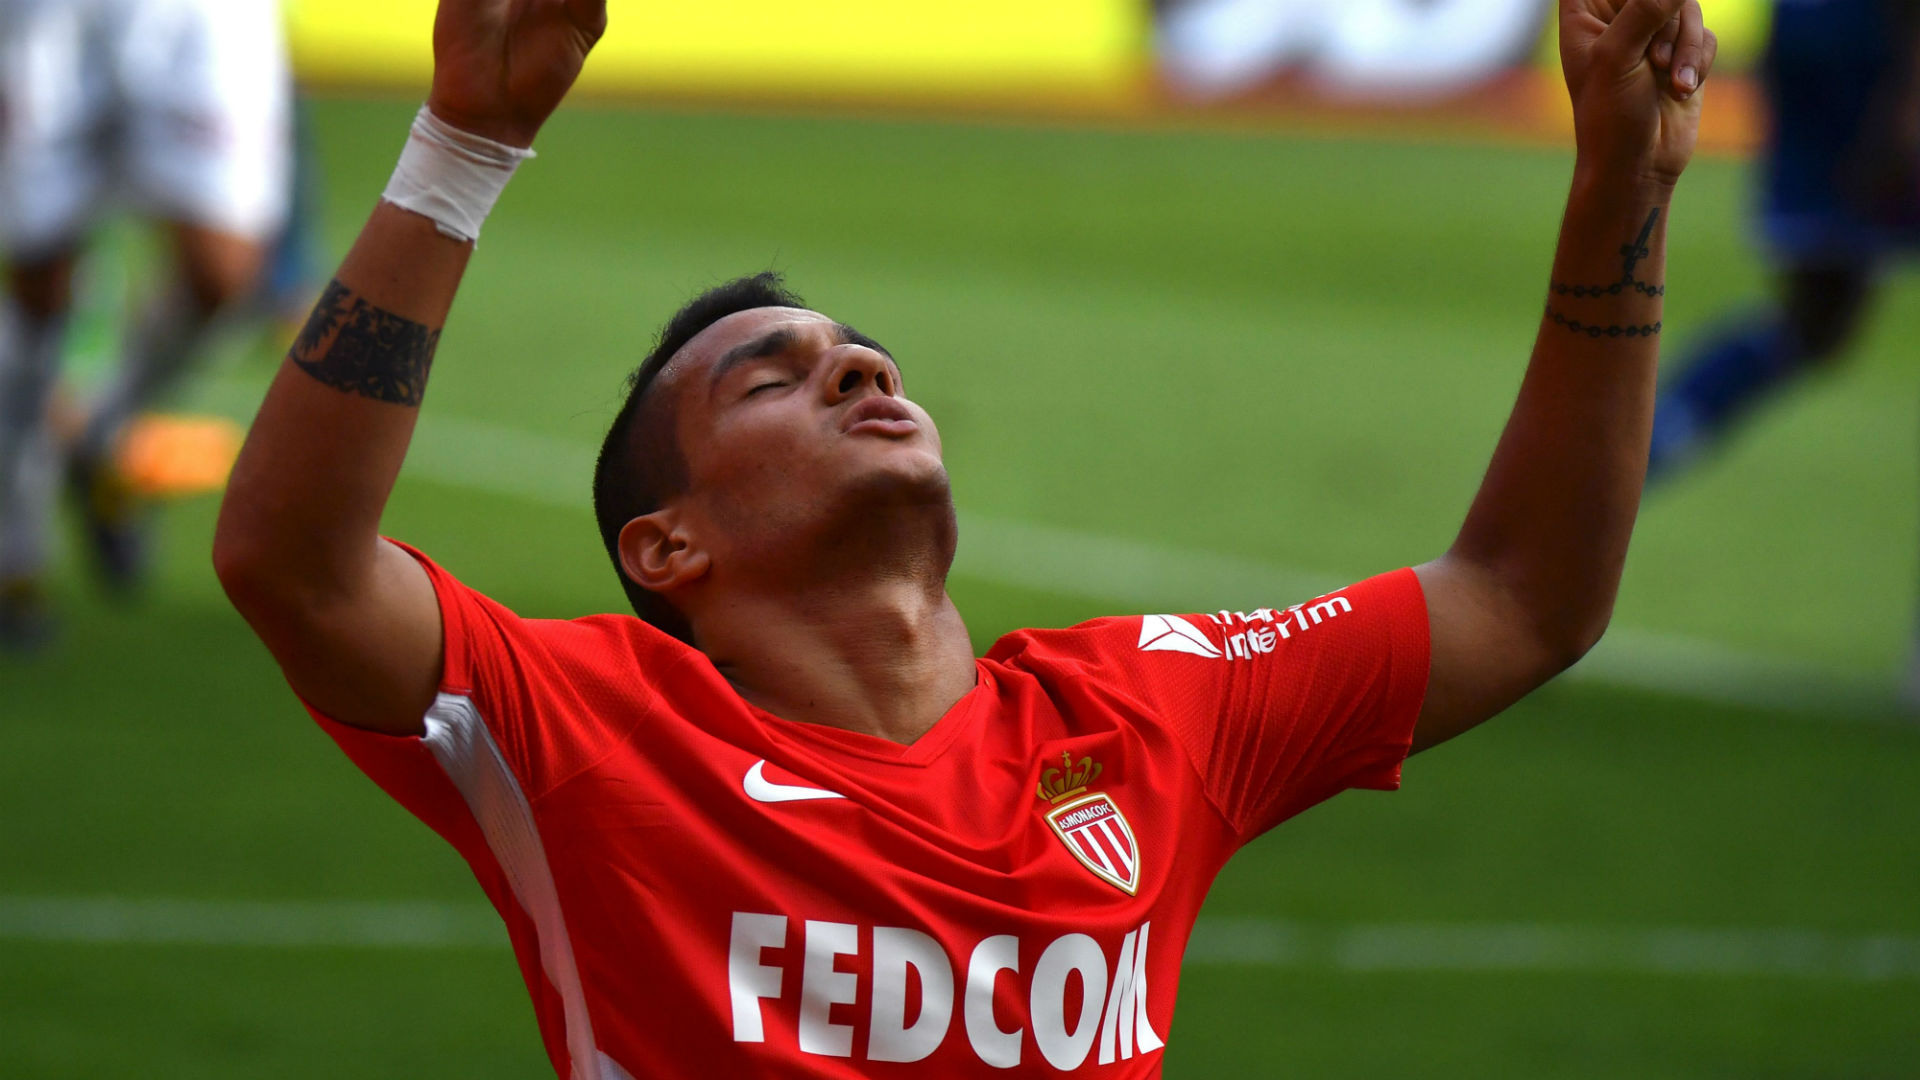 Phenomenon: Nicknamed after Ronaldo, meet Ligue 1 rising star Rony Lopes